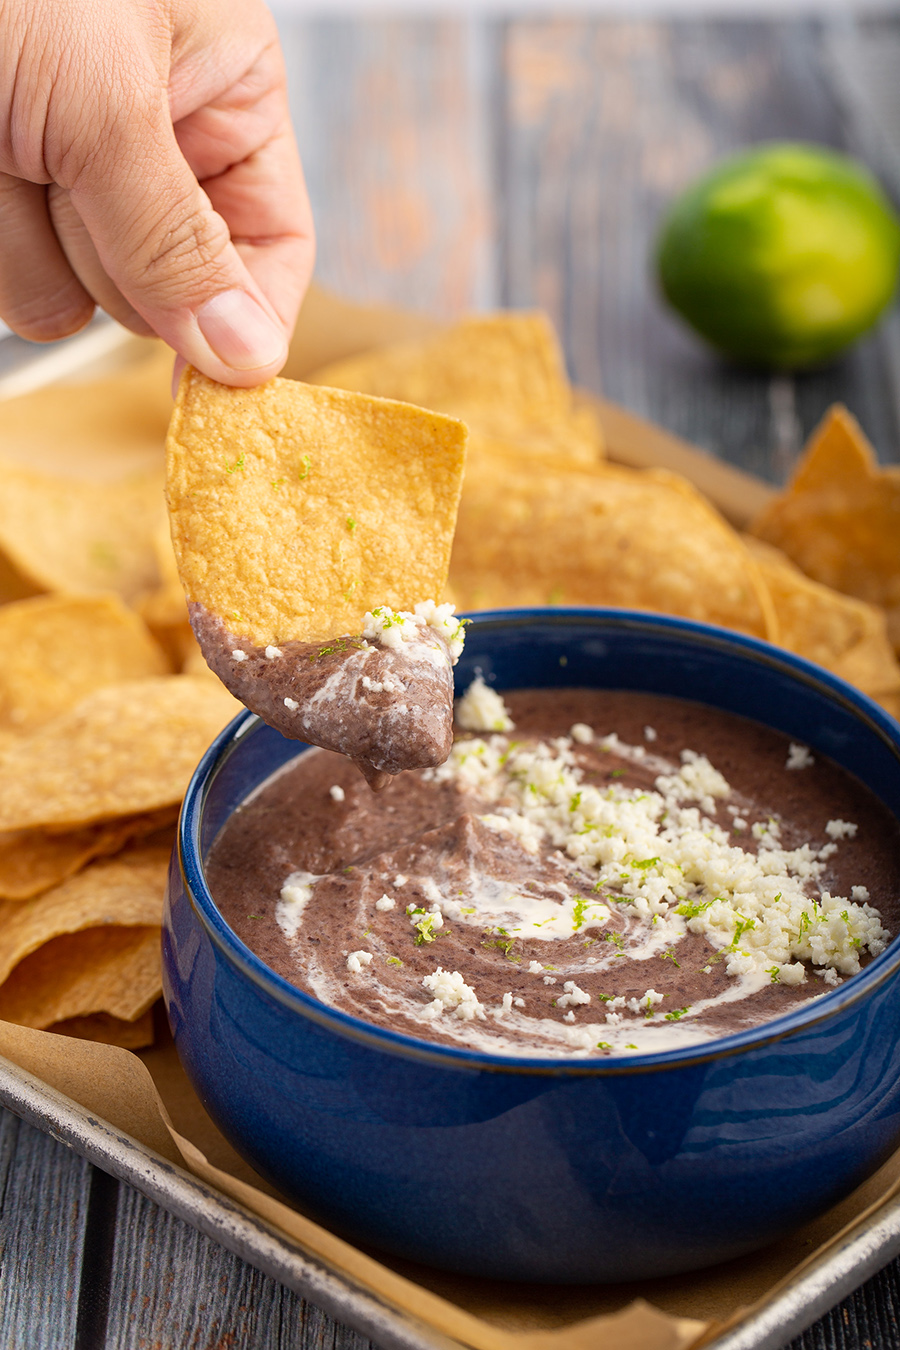 Cheesy Black Bean Dip | This is my copycat recipe of the bean dip at Trejo's Tacos. Creamy, savory, cheesy, little sweet, and little citrusy. #blackbean #copycatrecipe #trejostacos #beandip #cheese #cotija #jalapeno #lime #appetizer #appetizerrecipe #makeahed #dinner #partyfood | The Missing Lokness